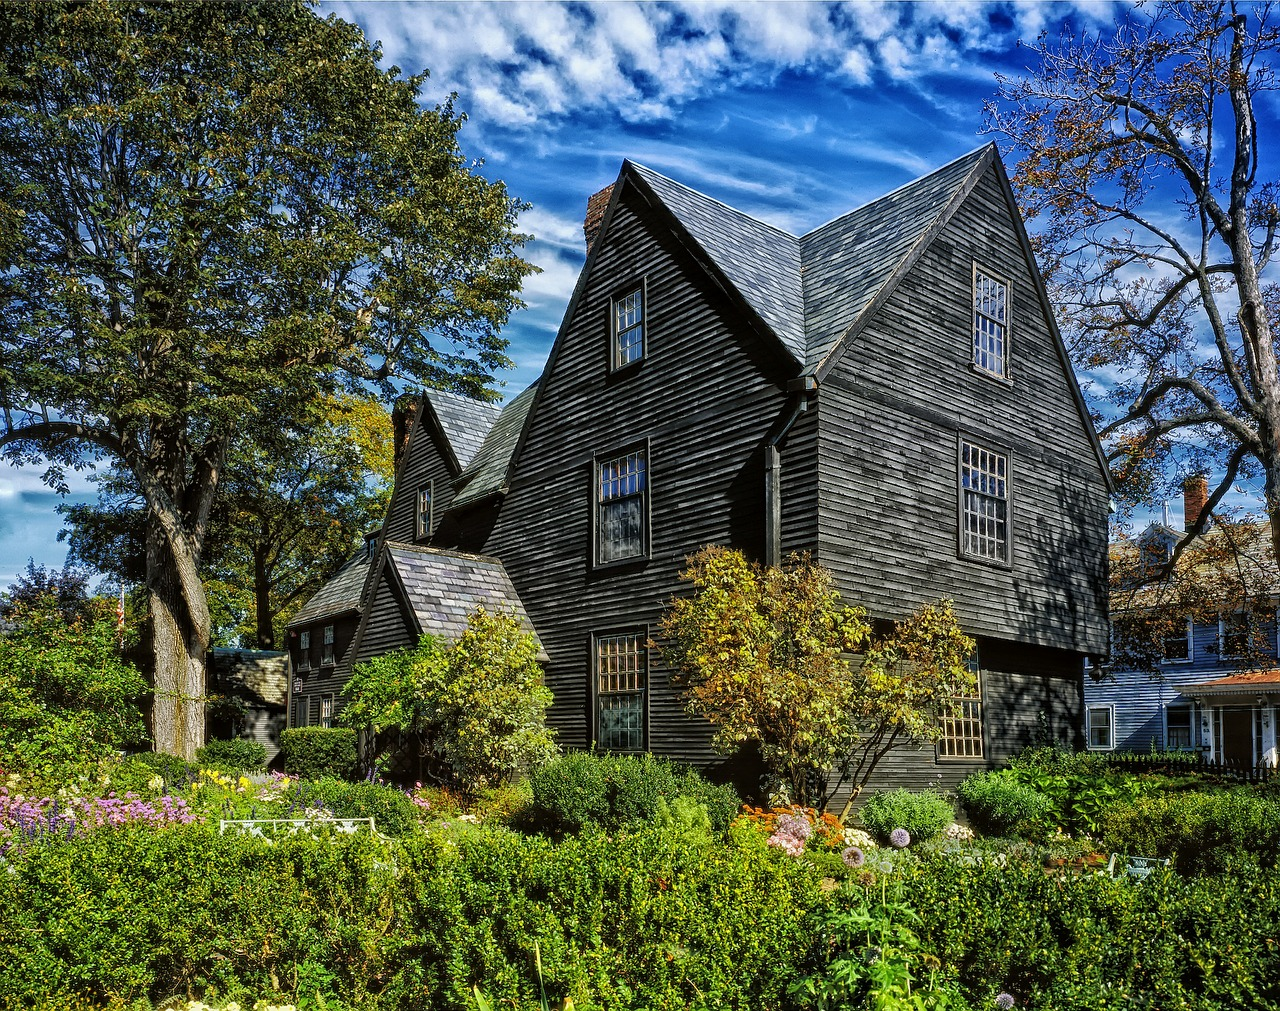 house-of-seven-gables-404200_1280